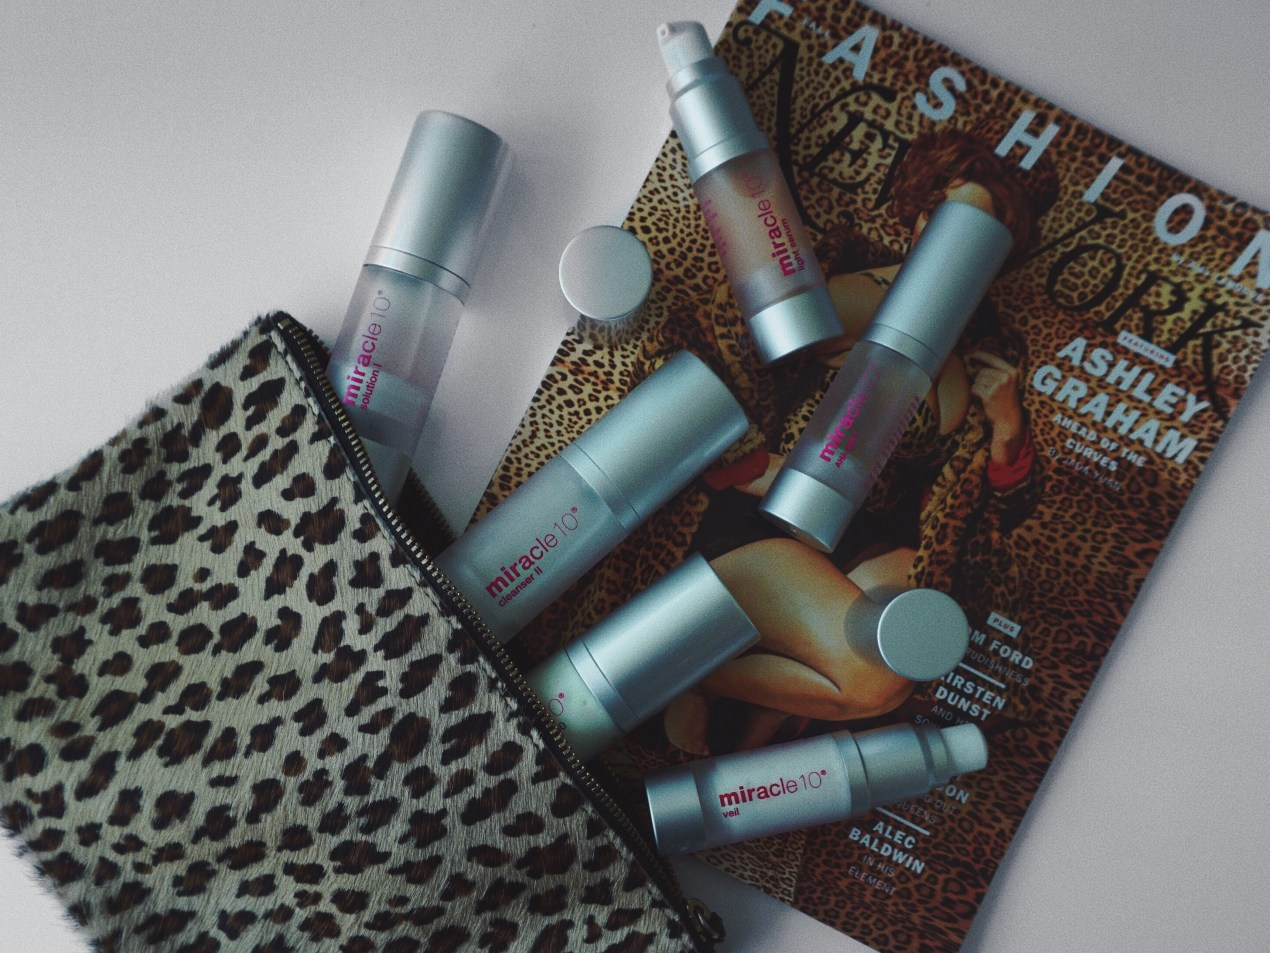 Miracle 10 Skincare | The Lady-like Leopard